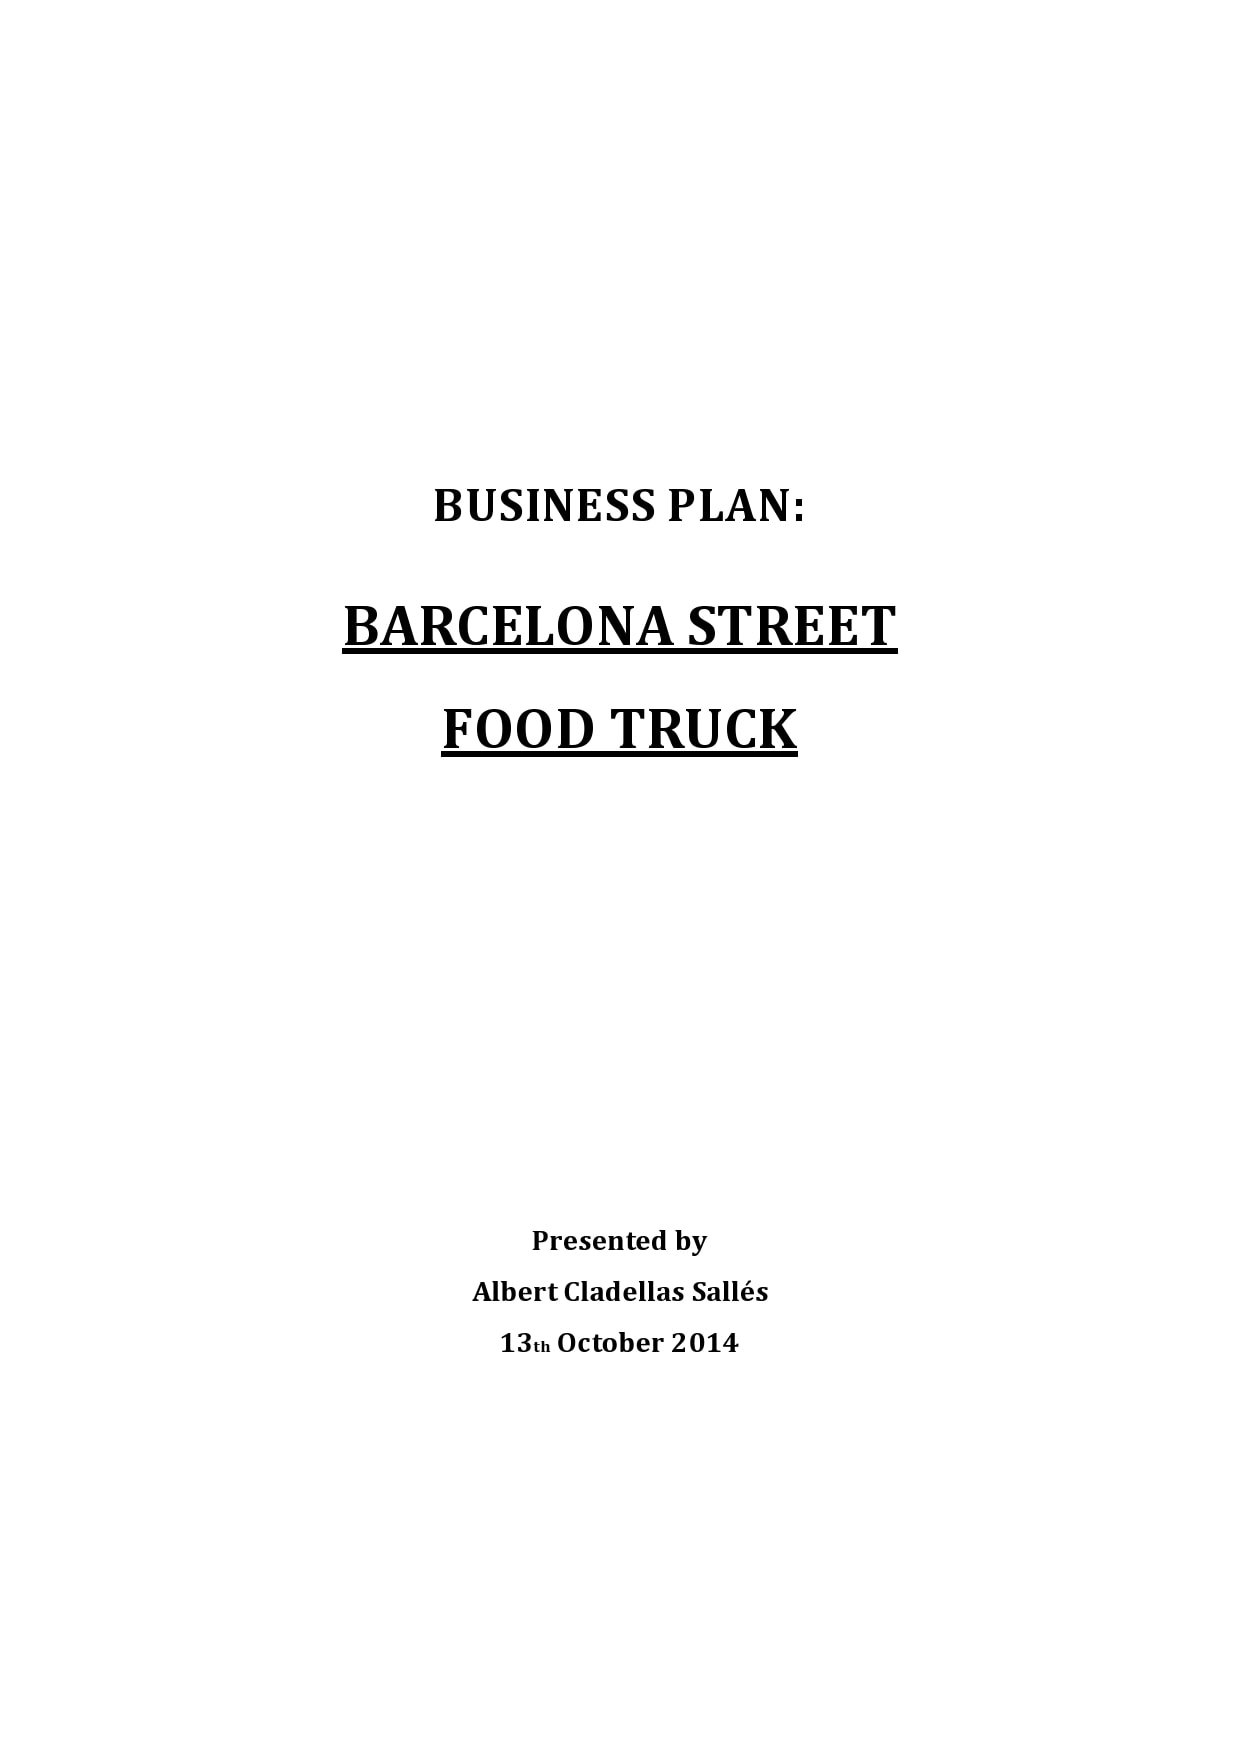 food truck business plan 16